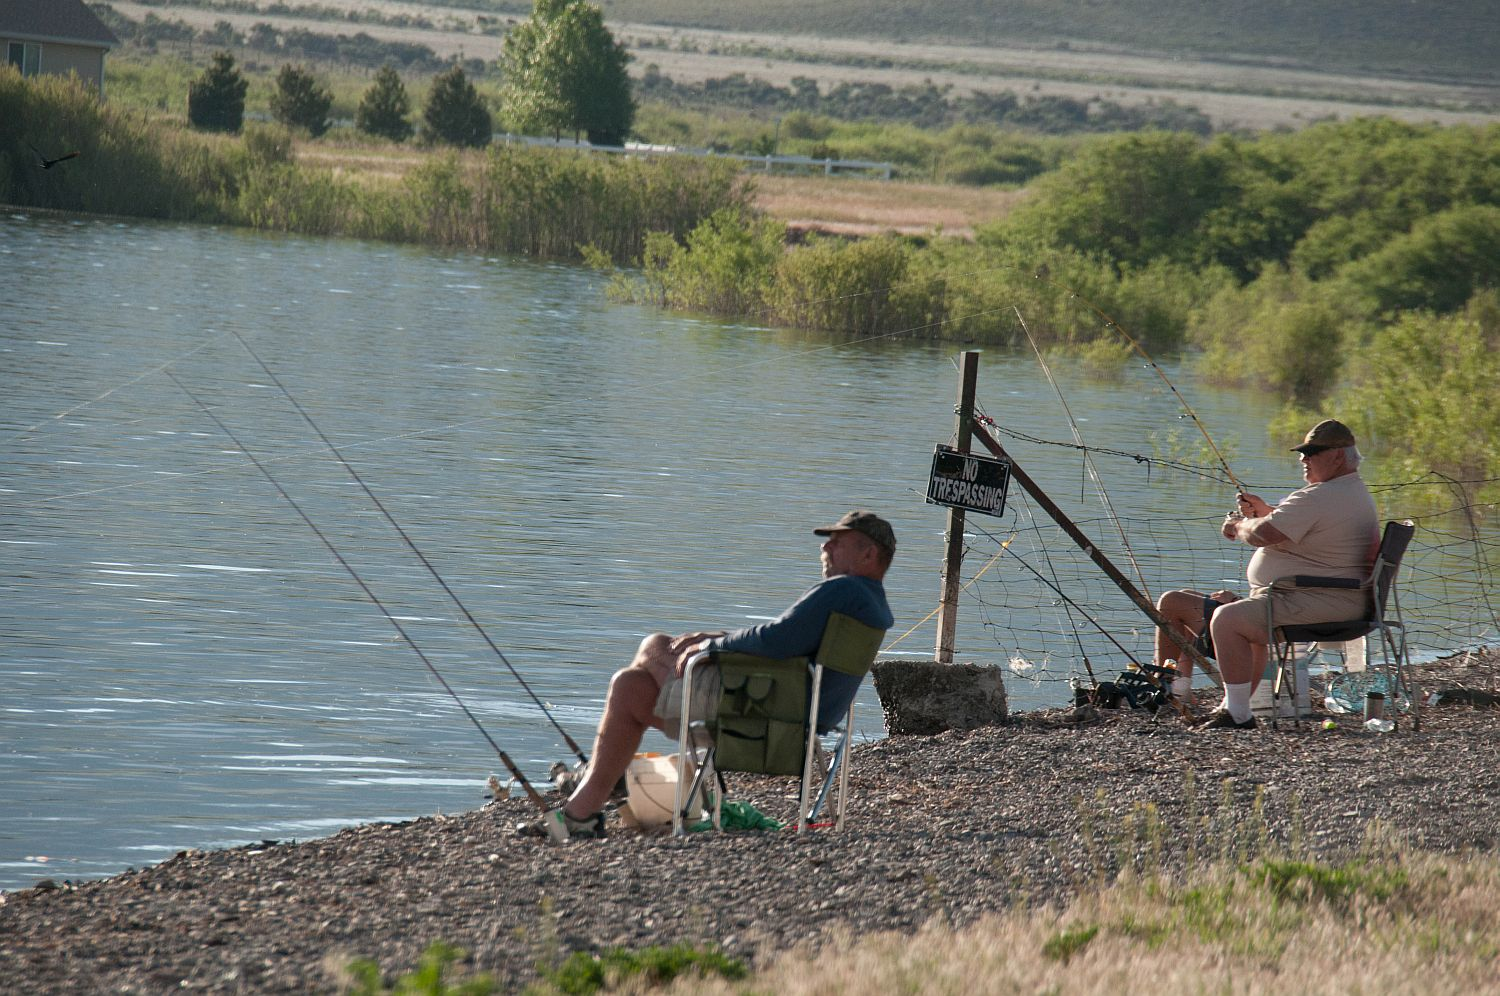 Shore fishing at Otter Creek, photo for illustration. Antimony, Utah, date not specified | Photo by Kathy Lillywhite, St. George News